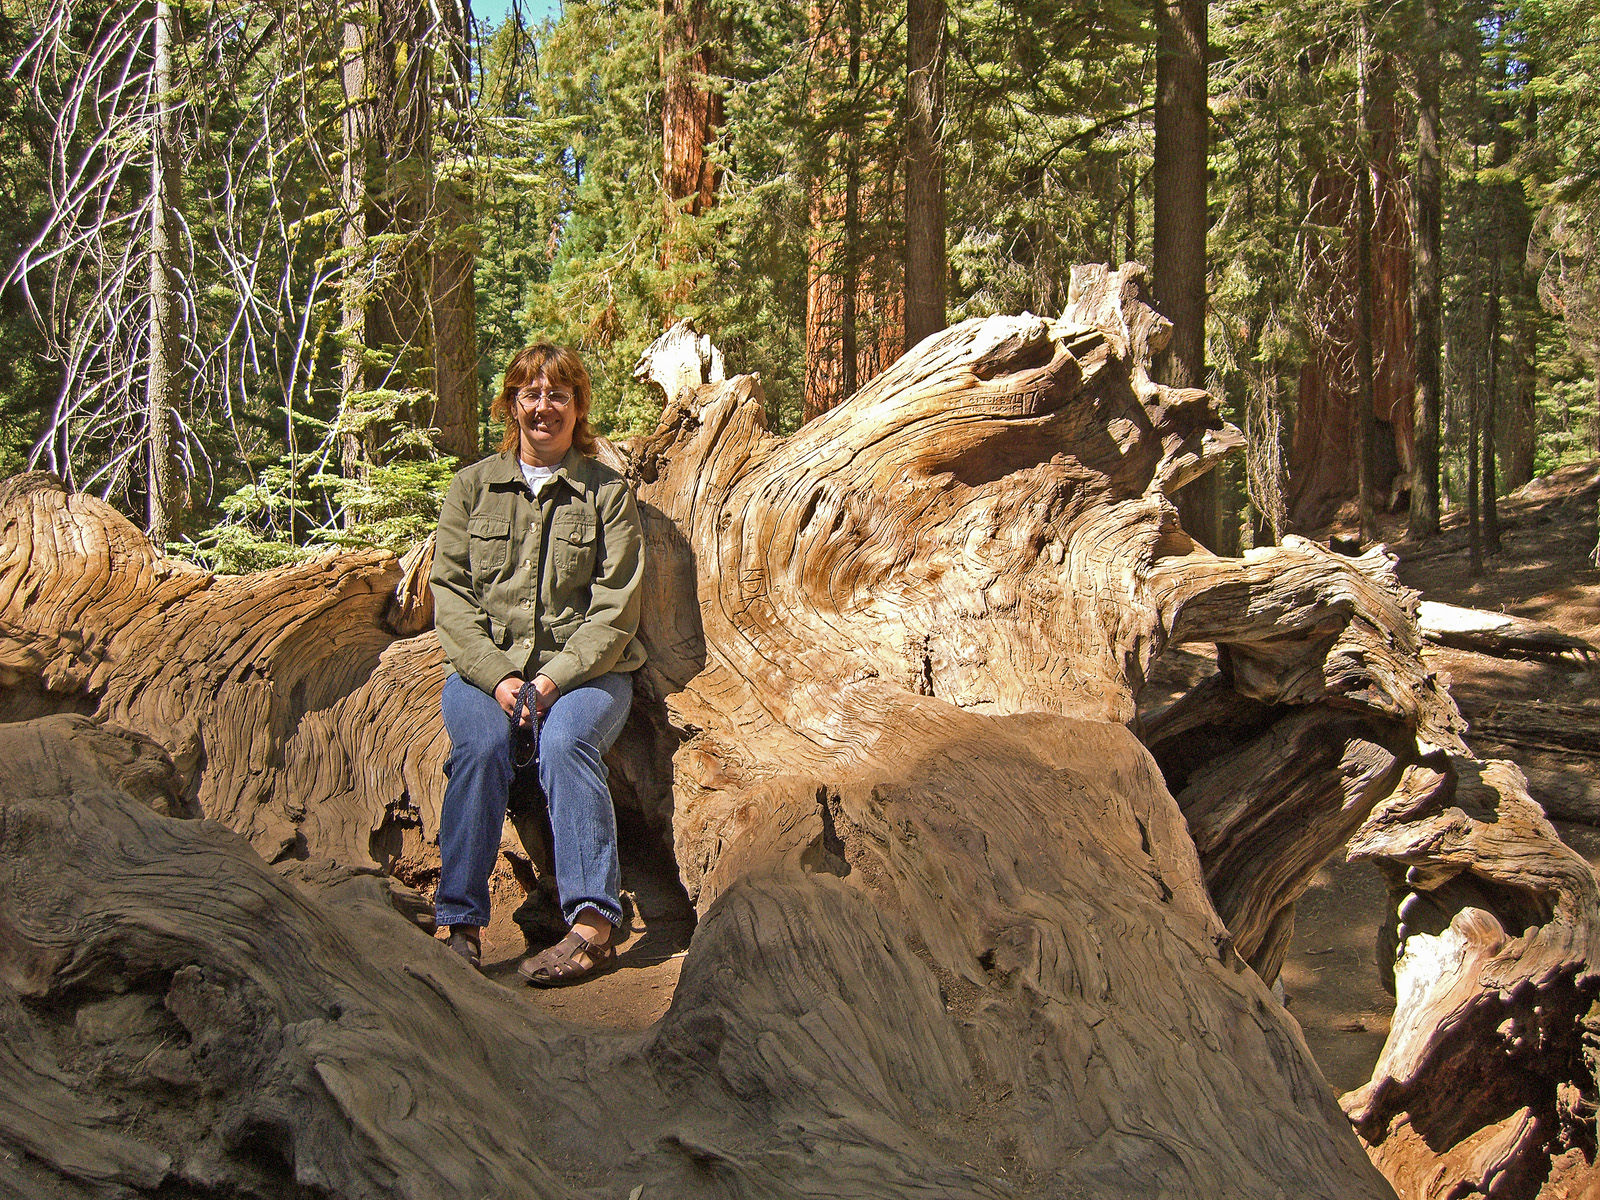 Sitting on a stump in the giant sequoias photo